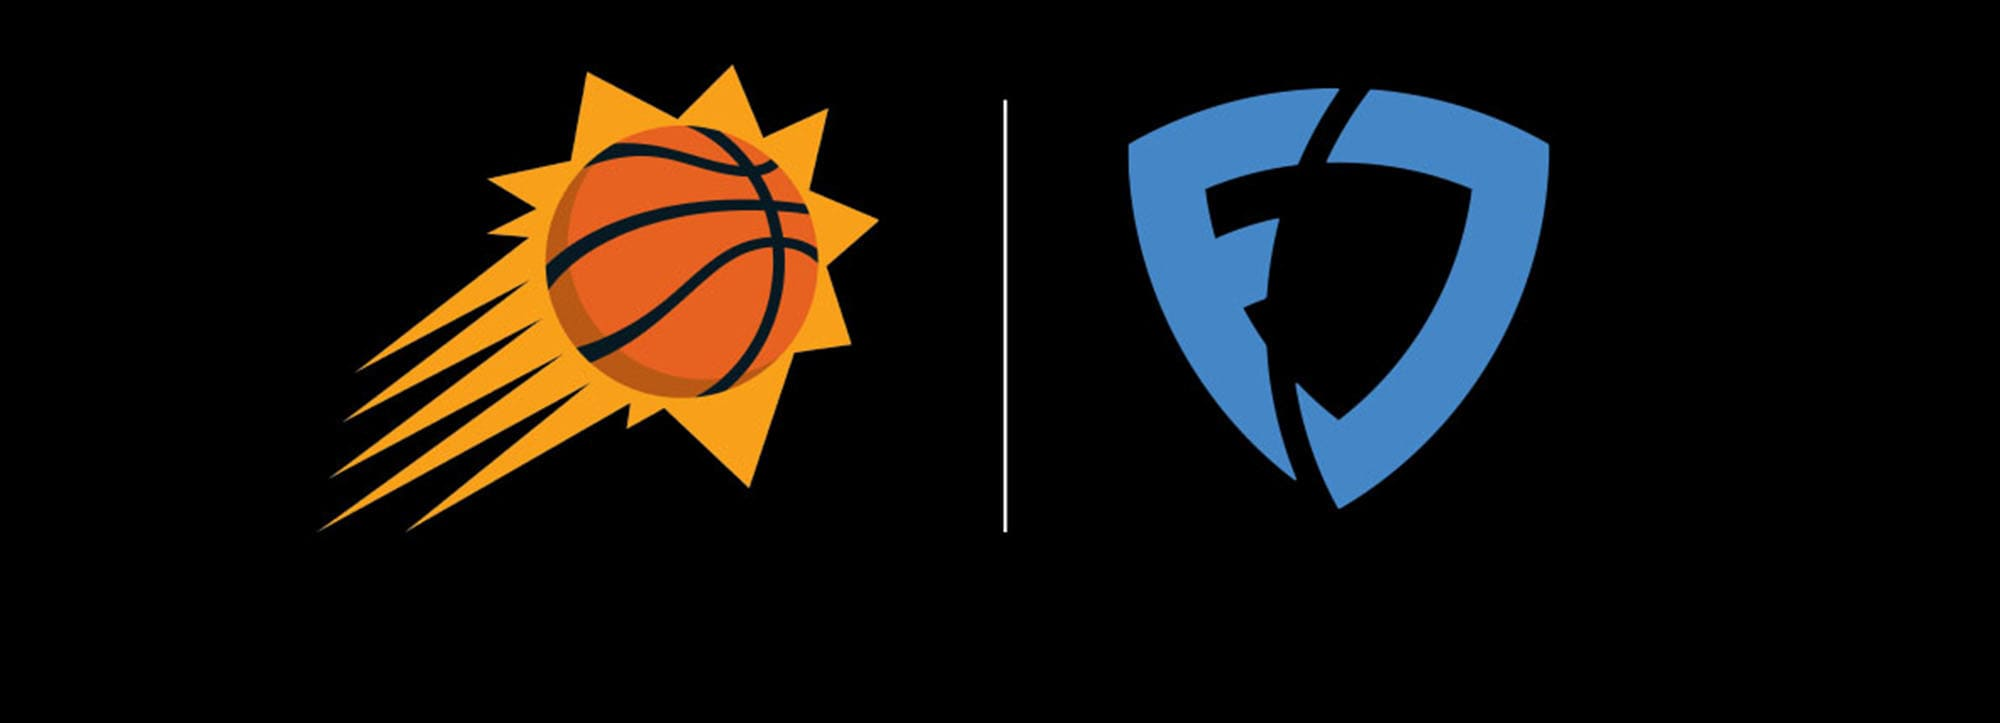 SUNS AND FANDUEL ANNOUNCE ARIZONA  MARKET ACCESS PARTNERSHIP MAKING FANDUEL THE SUNS OFFICIAL SPORTSBOOK AND DAILY FANTASY SPORTS PARTNER